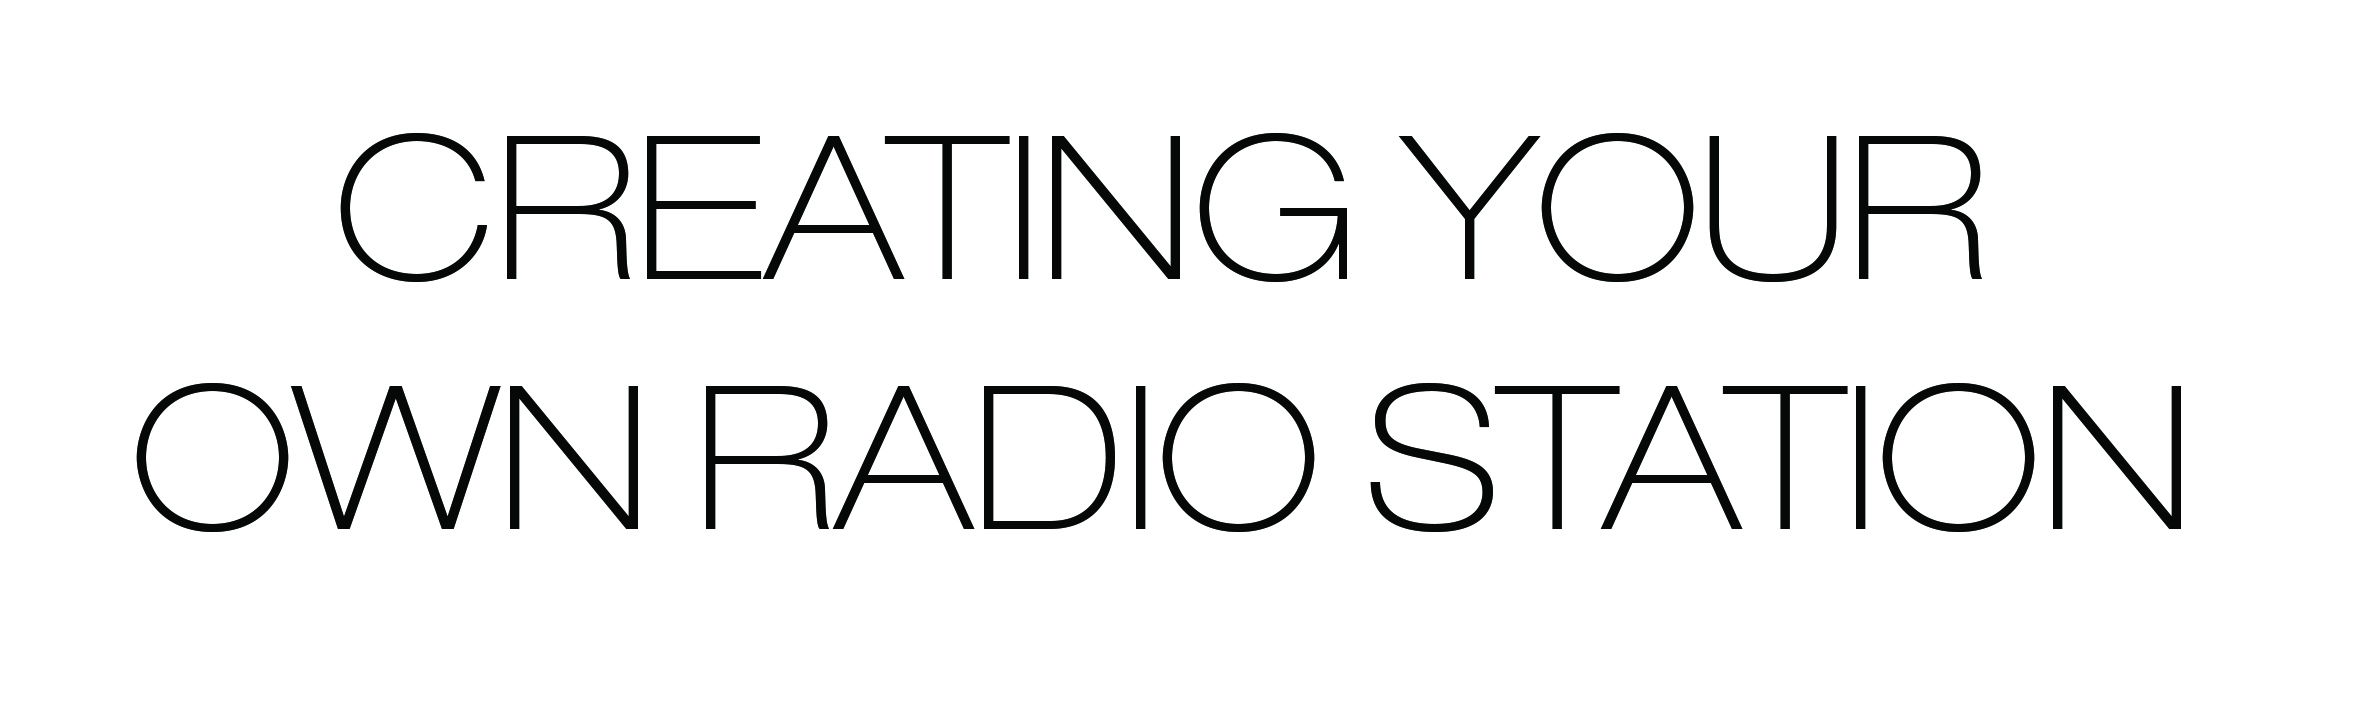 Build your own station.jpg